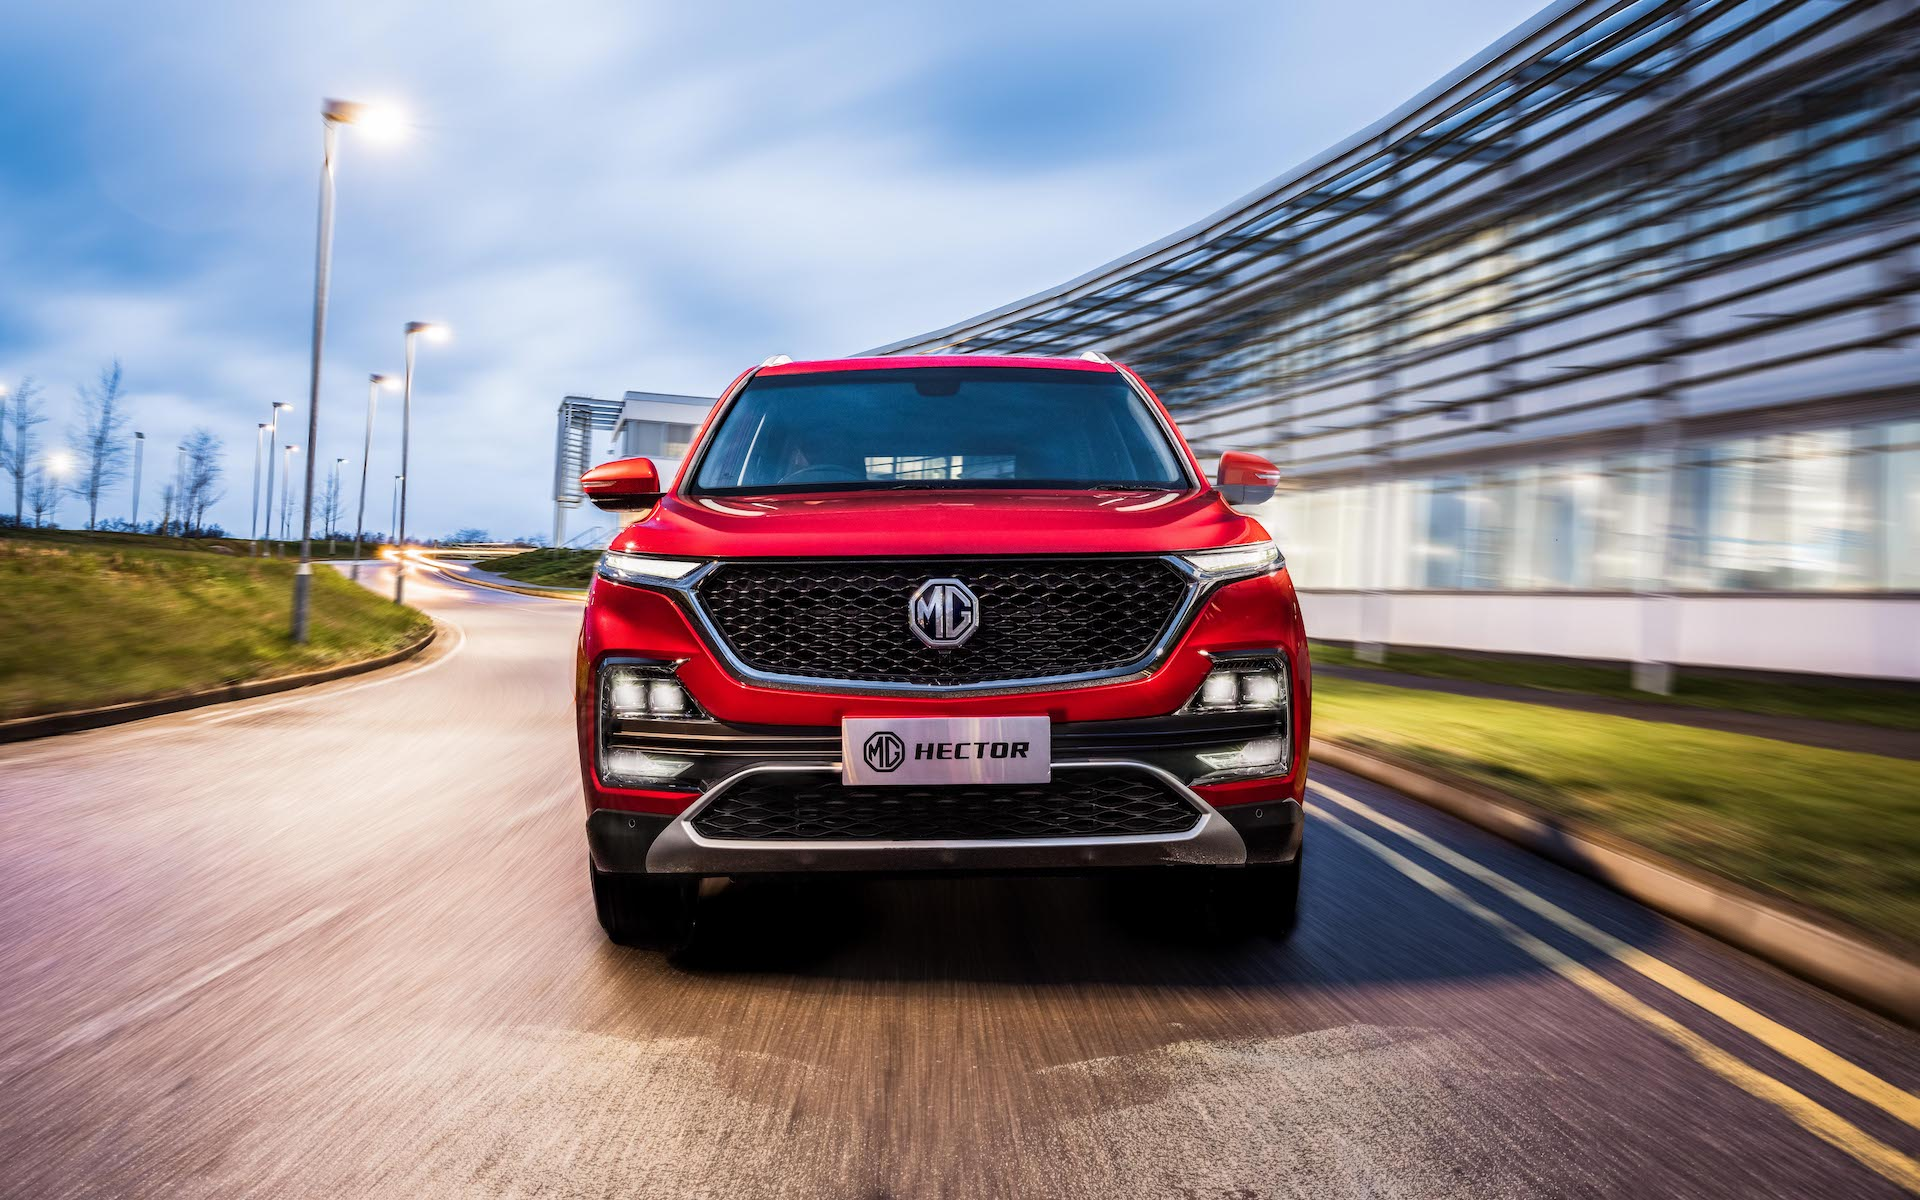 MG Motors officially reveals the Hector for the Indian market before its official launch